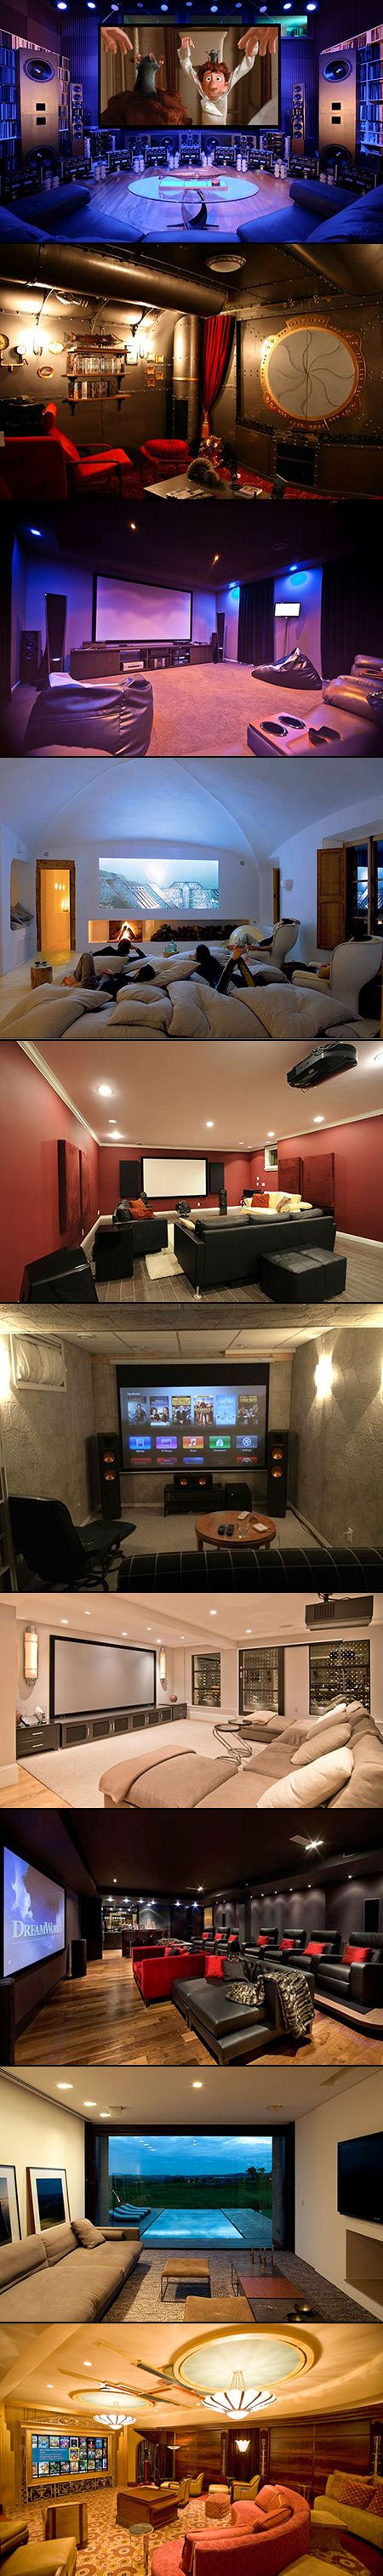 10 Incredible Home Theaters That Geeks Would Love